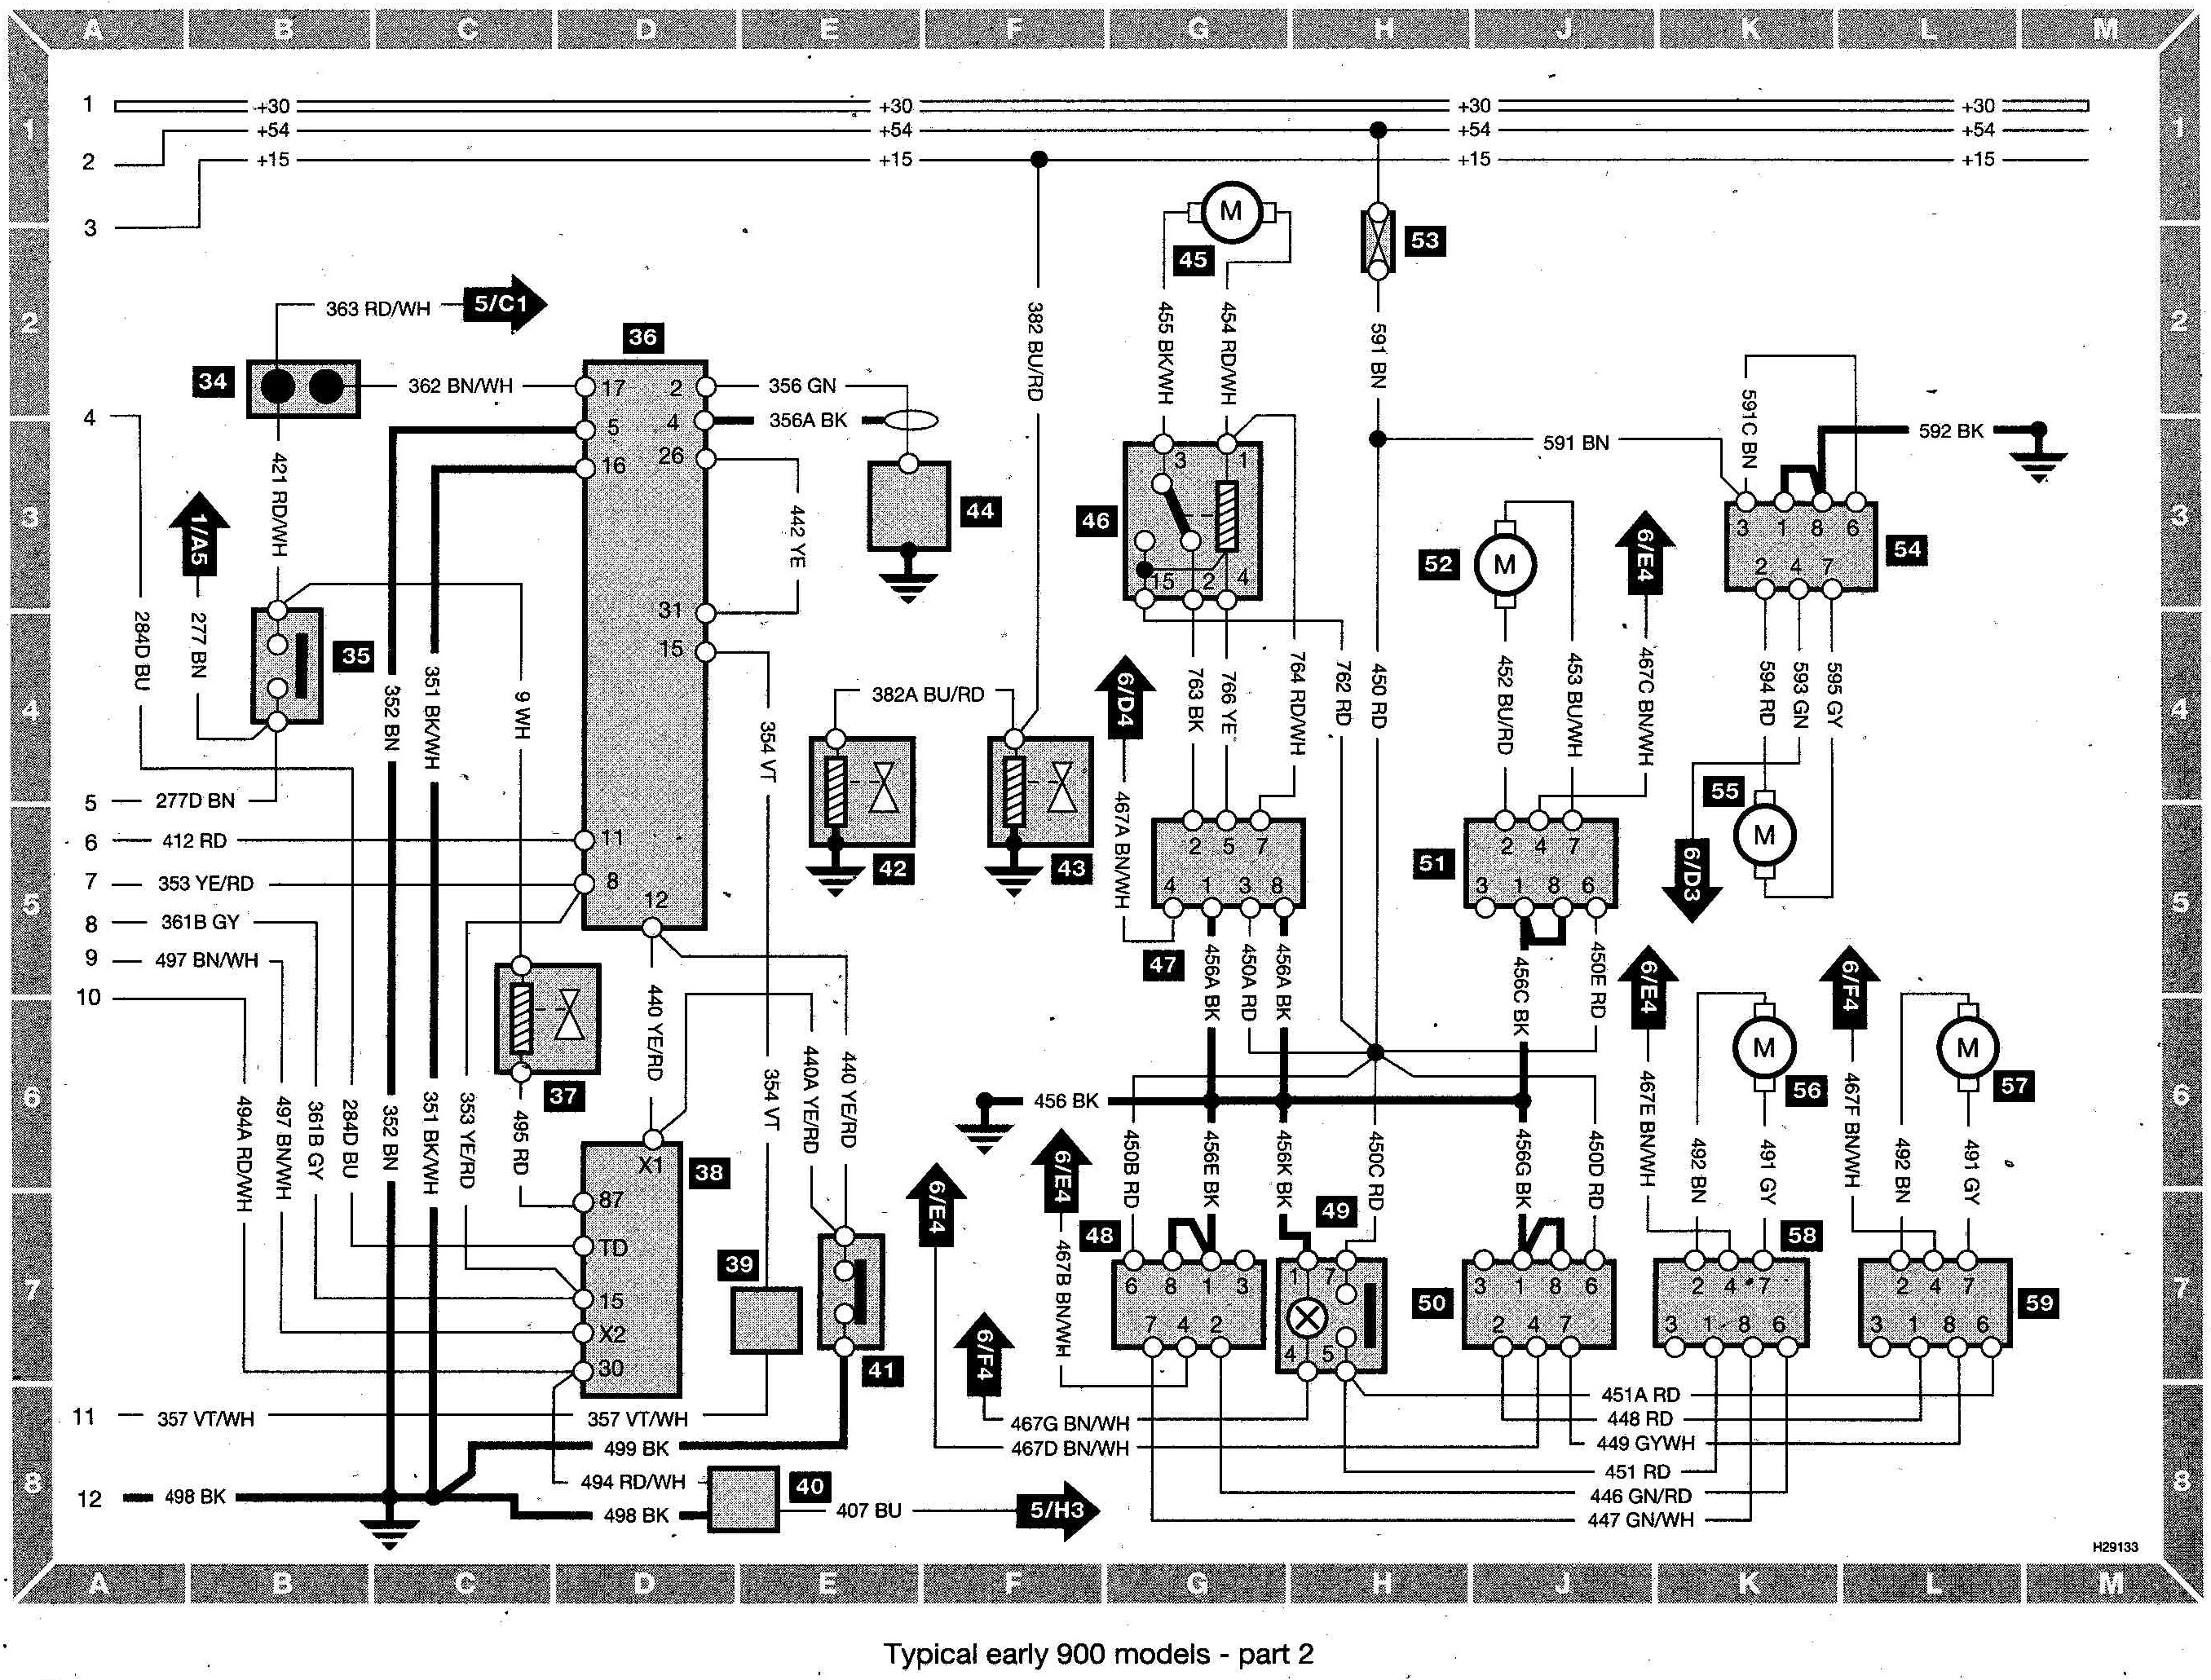 index of /saab/saab 900 wiring diagram (early models) 3 phase motor 208 wiring diagram 9 wires